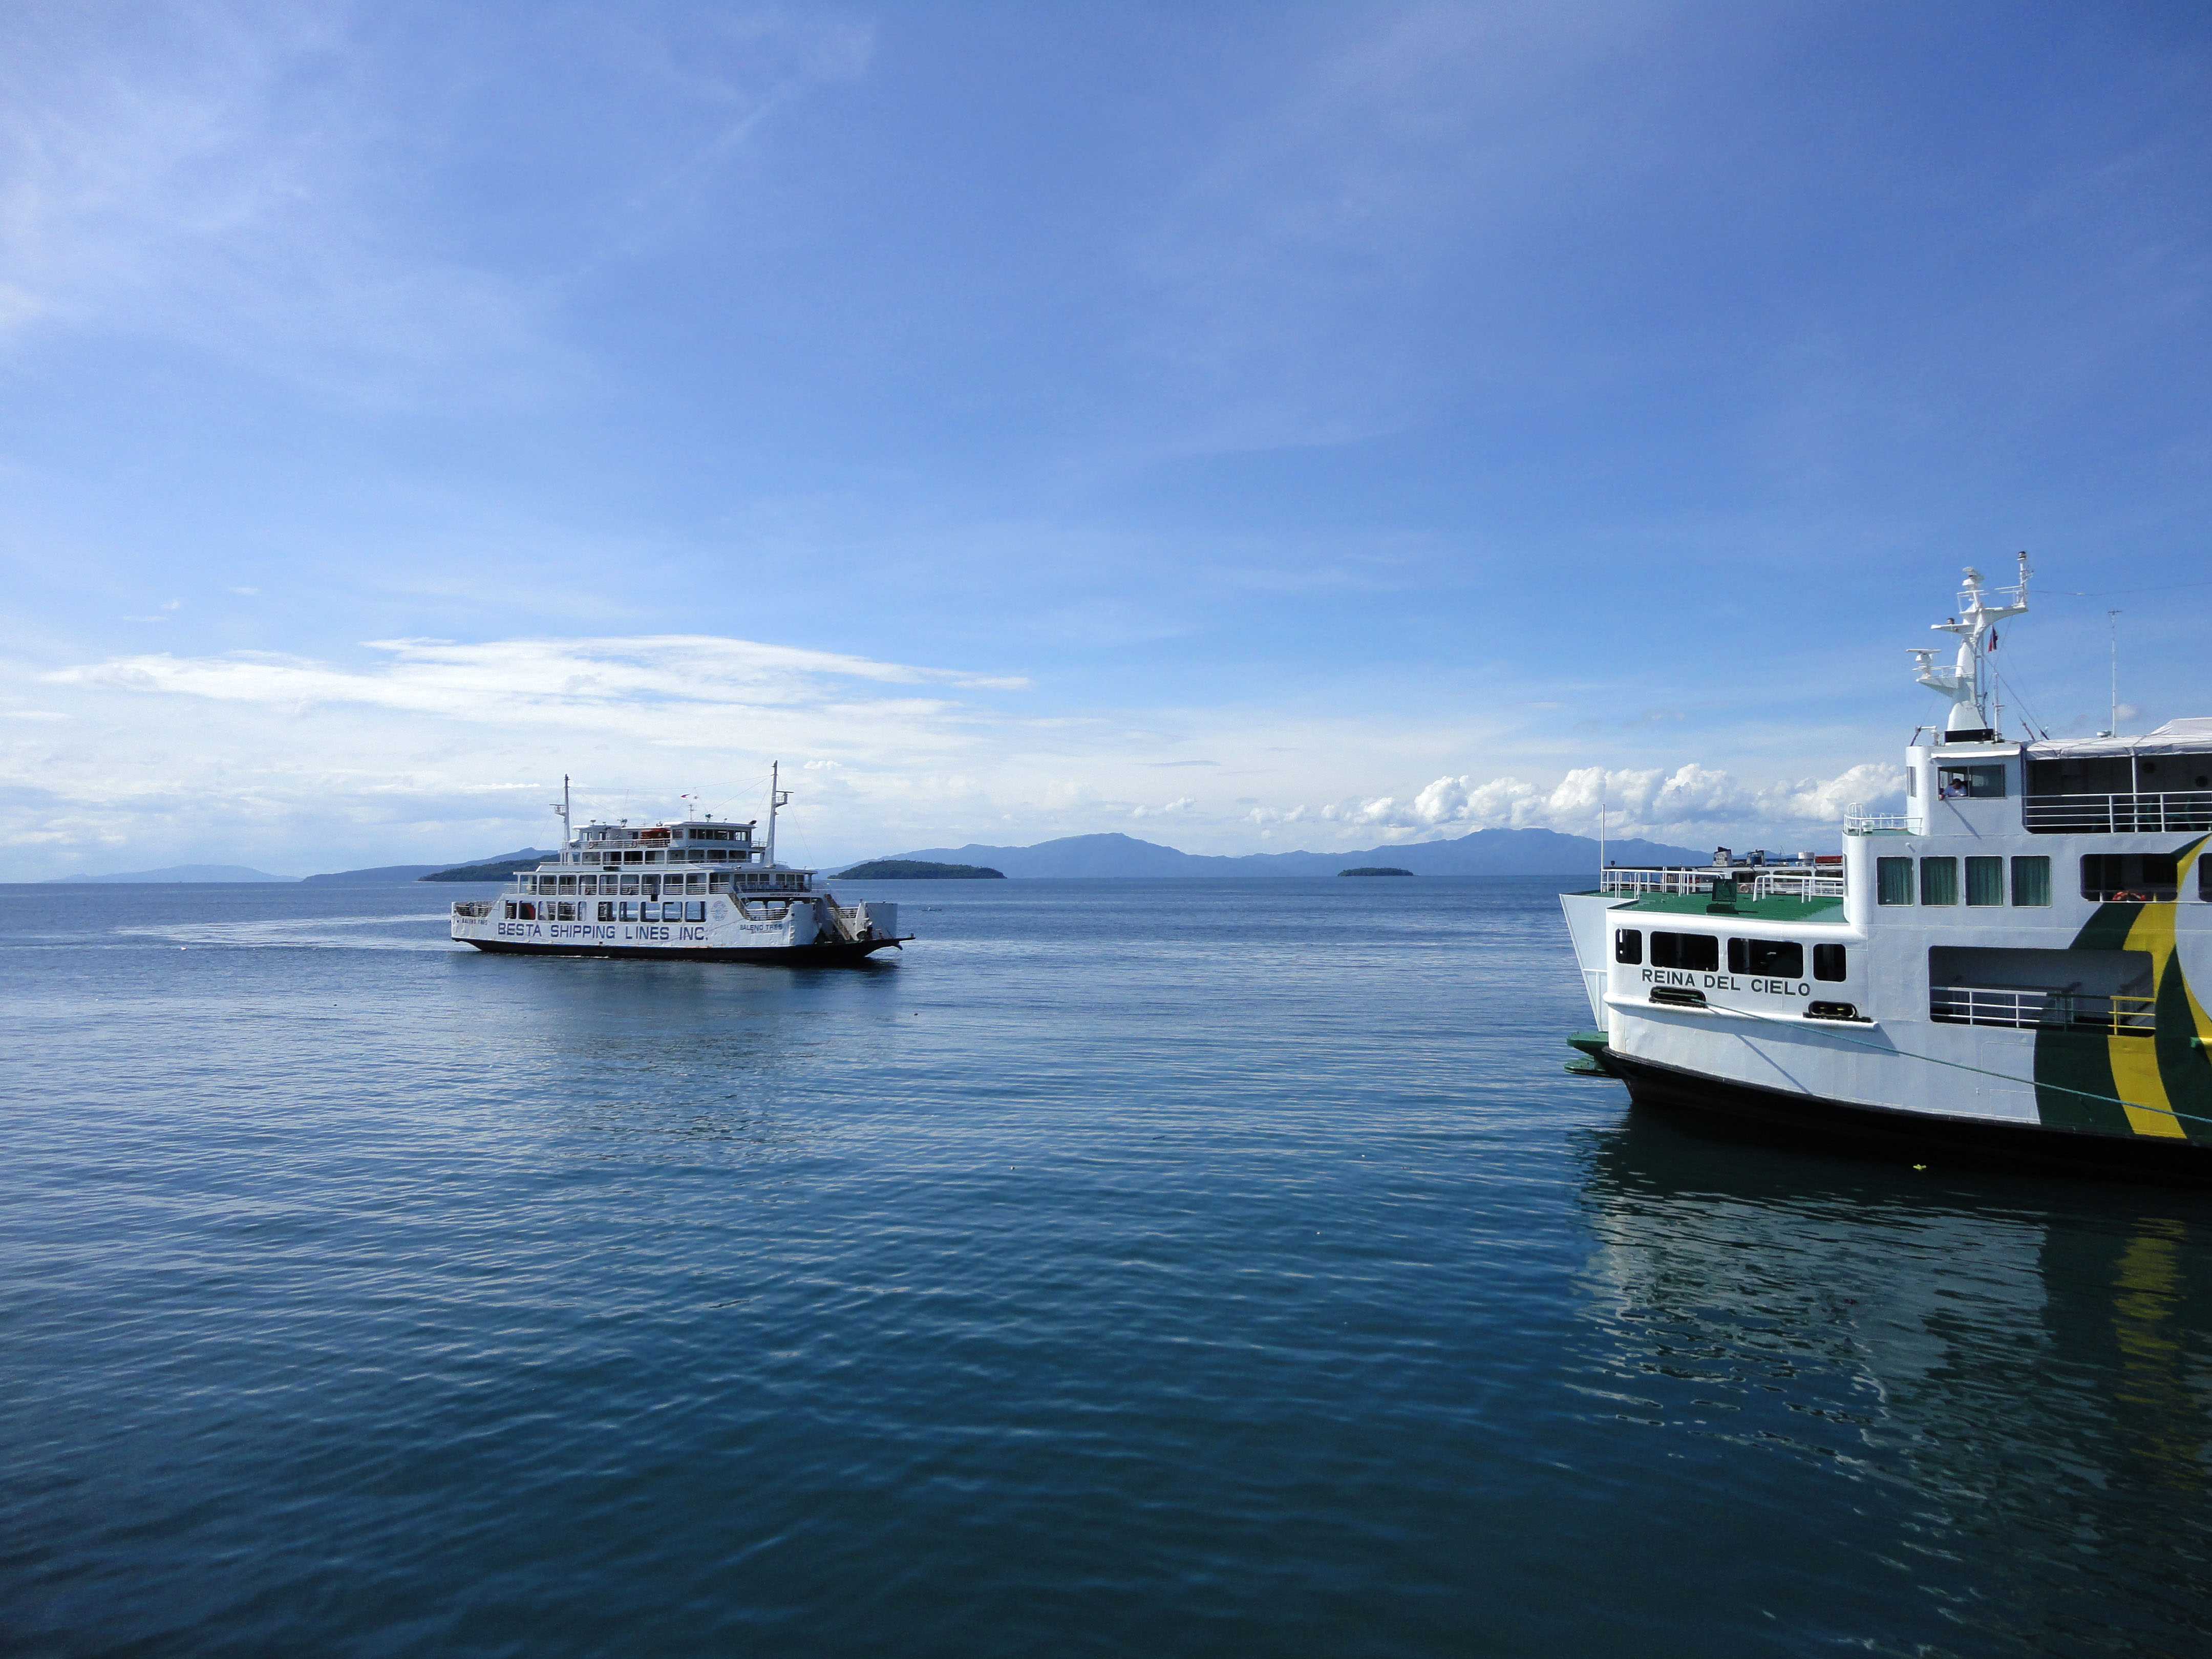 MV Baleno Tres car ferry Besa shipping lines Calapan Pier Philippines 04